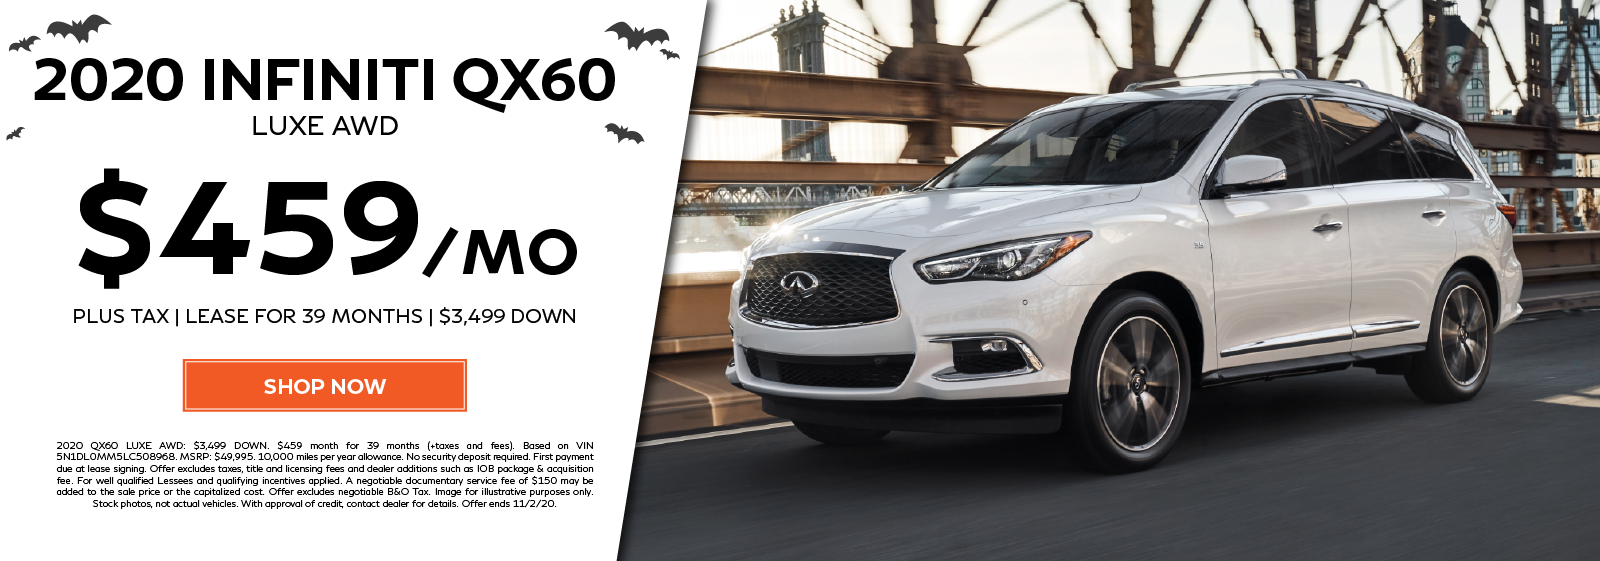 Lease a new 2020 QX60 LUXE AWD for $459 per month for 39 months. Click to shop now.